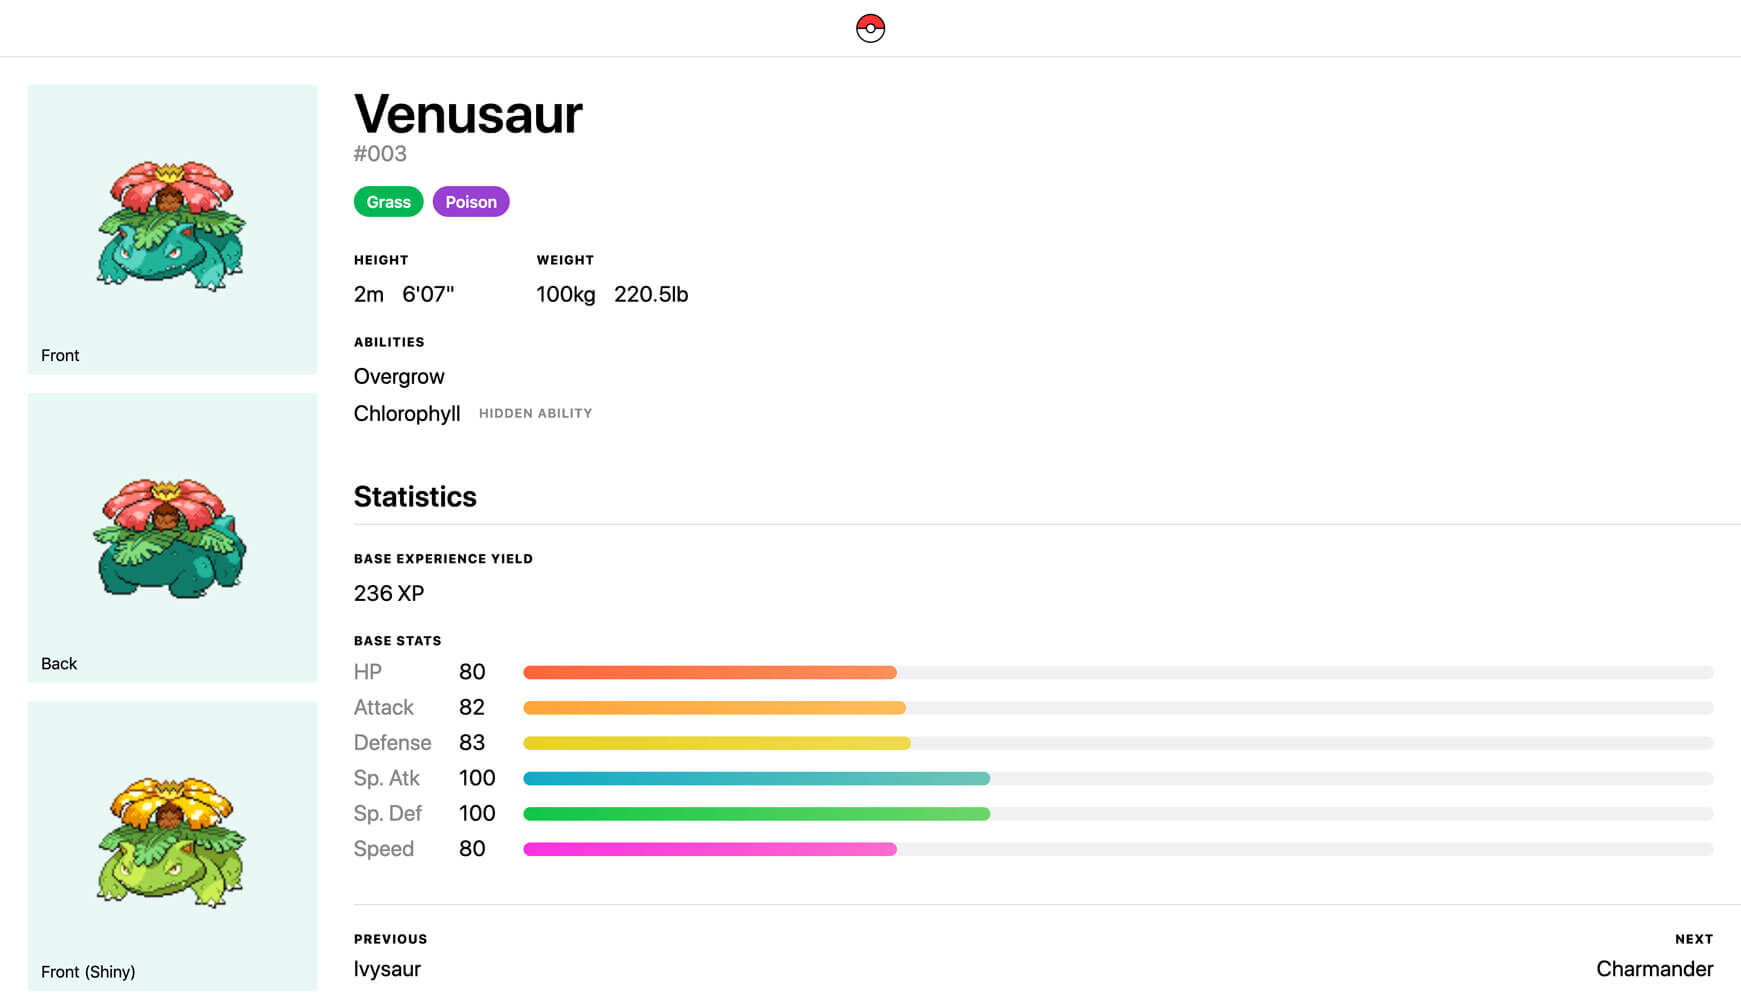 A detailed view for Venusaur, showing its sprites, types, abilities, and statistics.